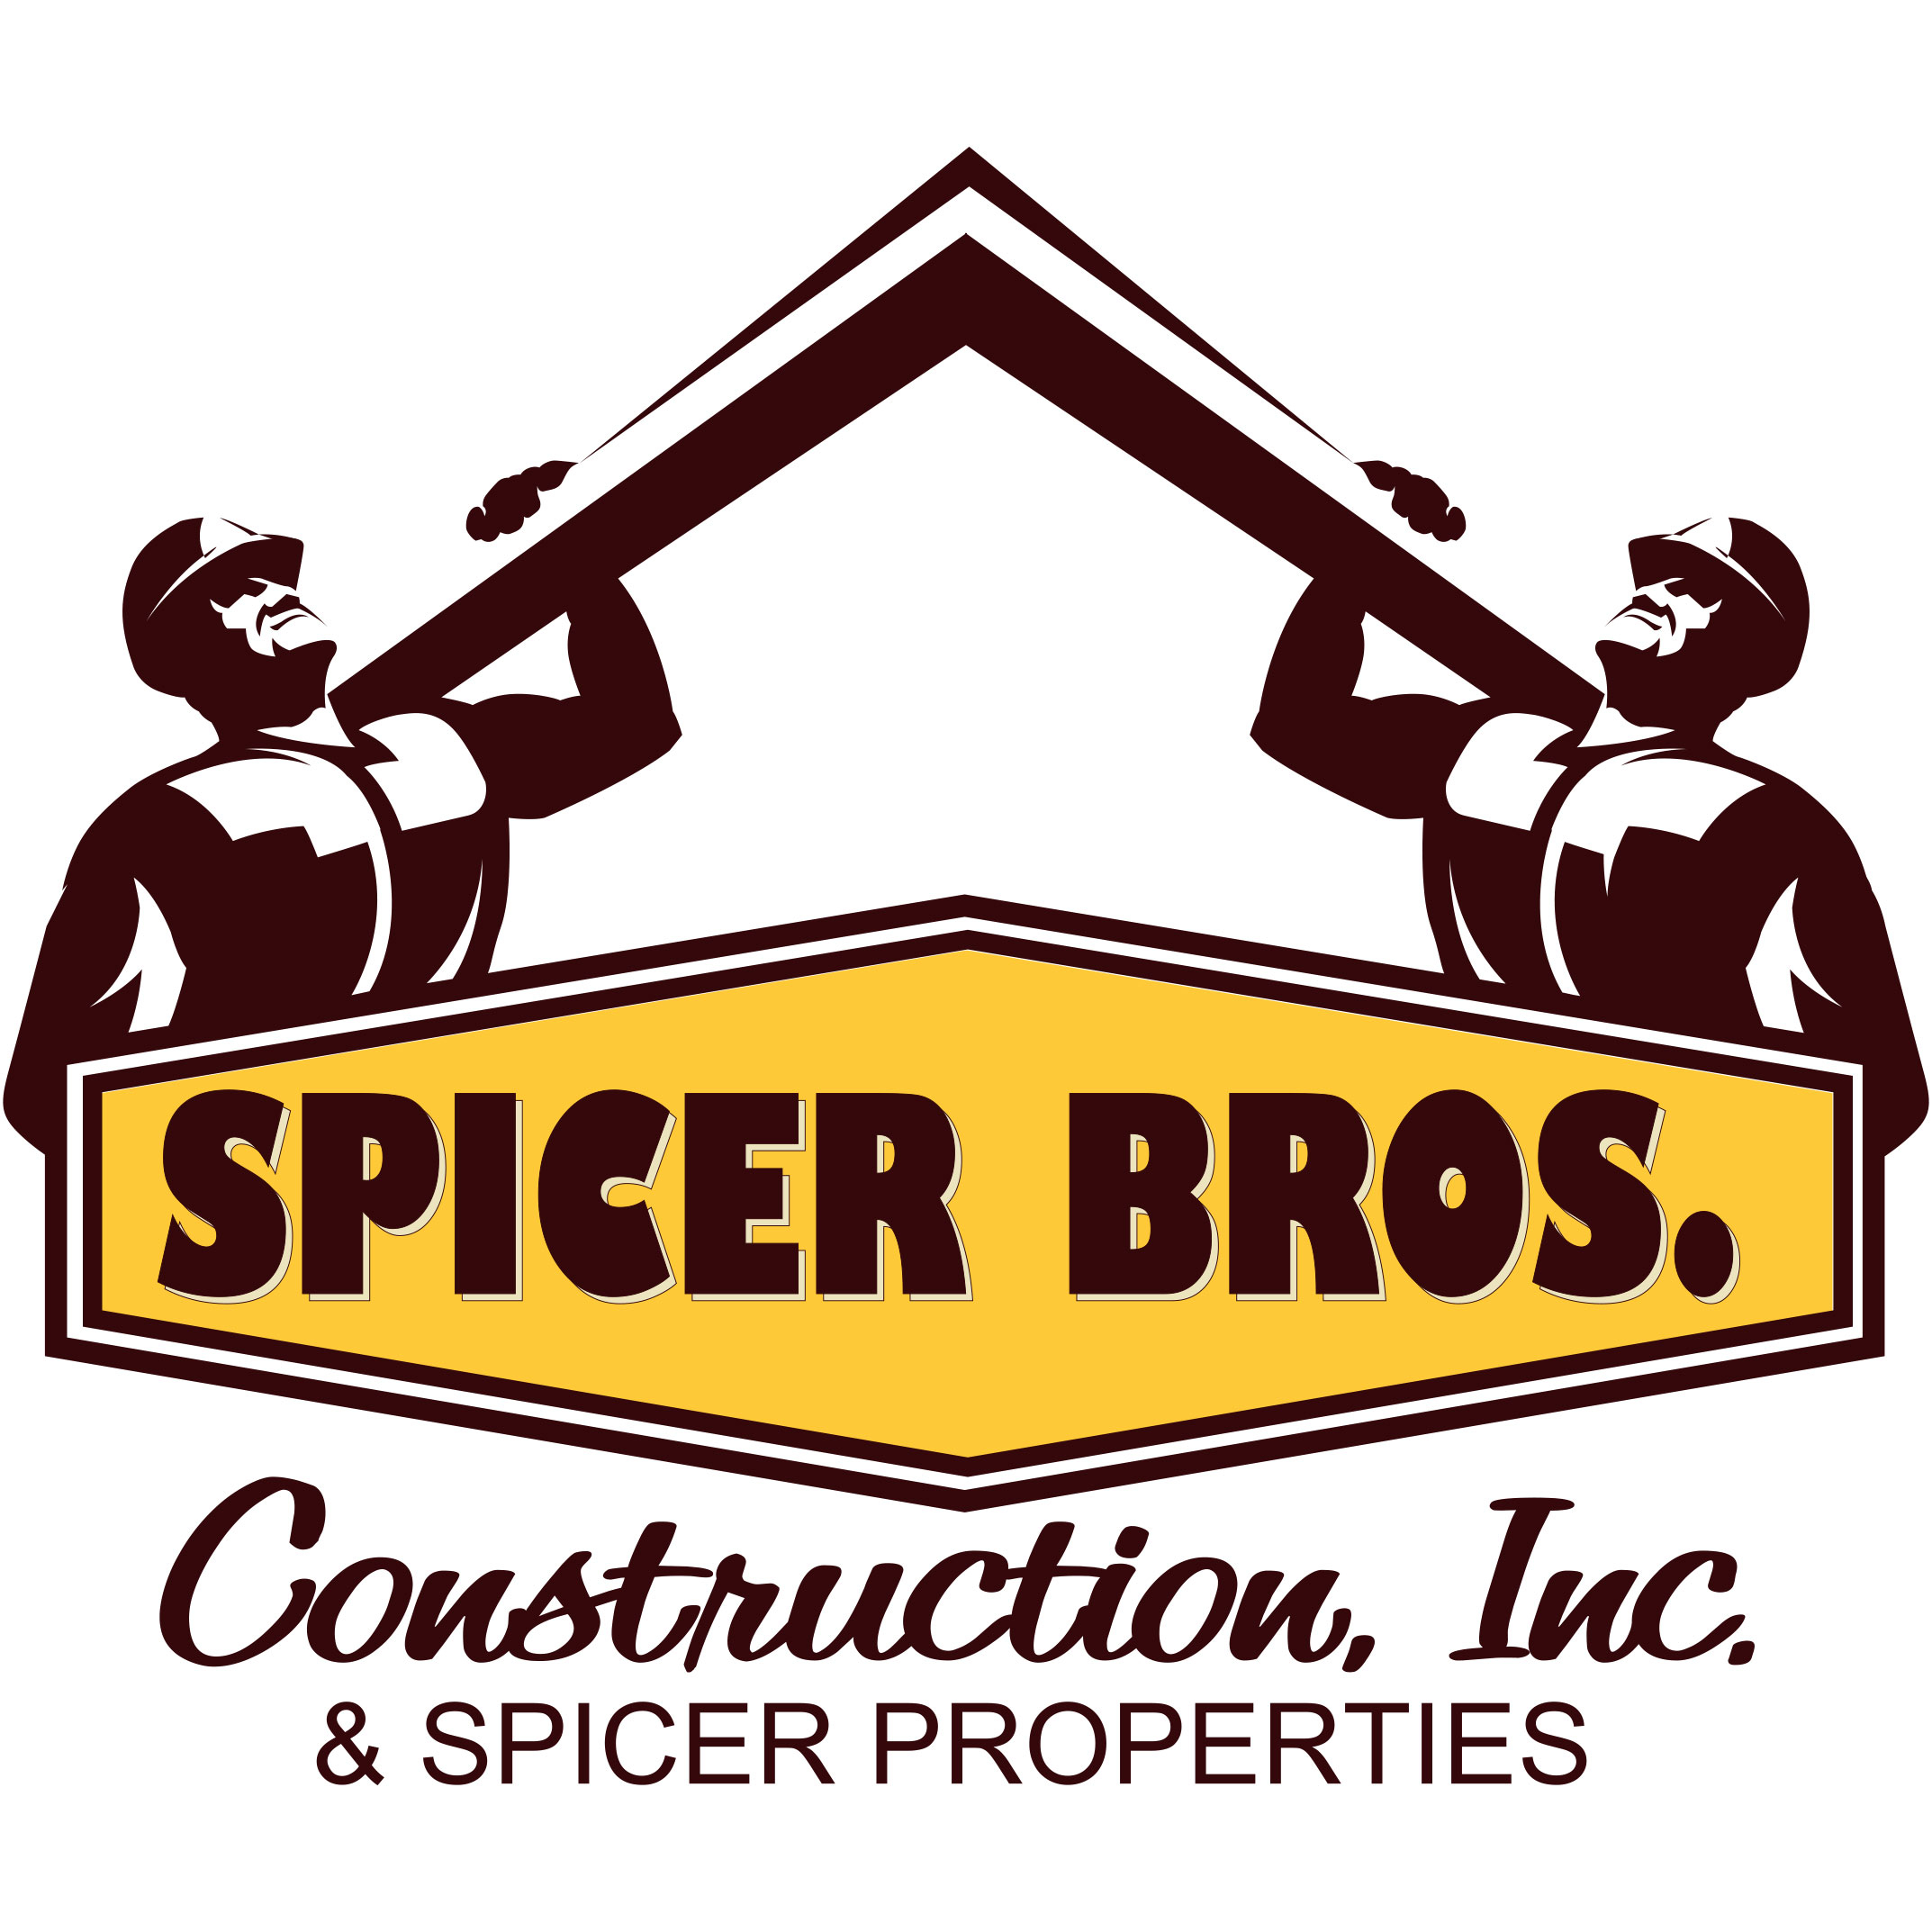 Spicer Bros. Construction